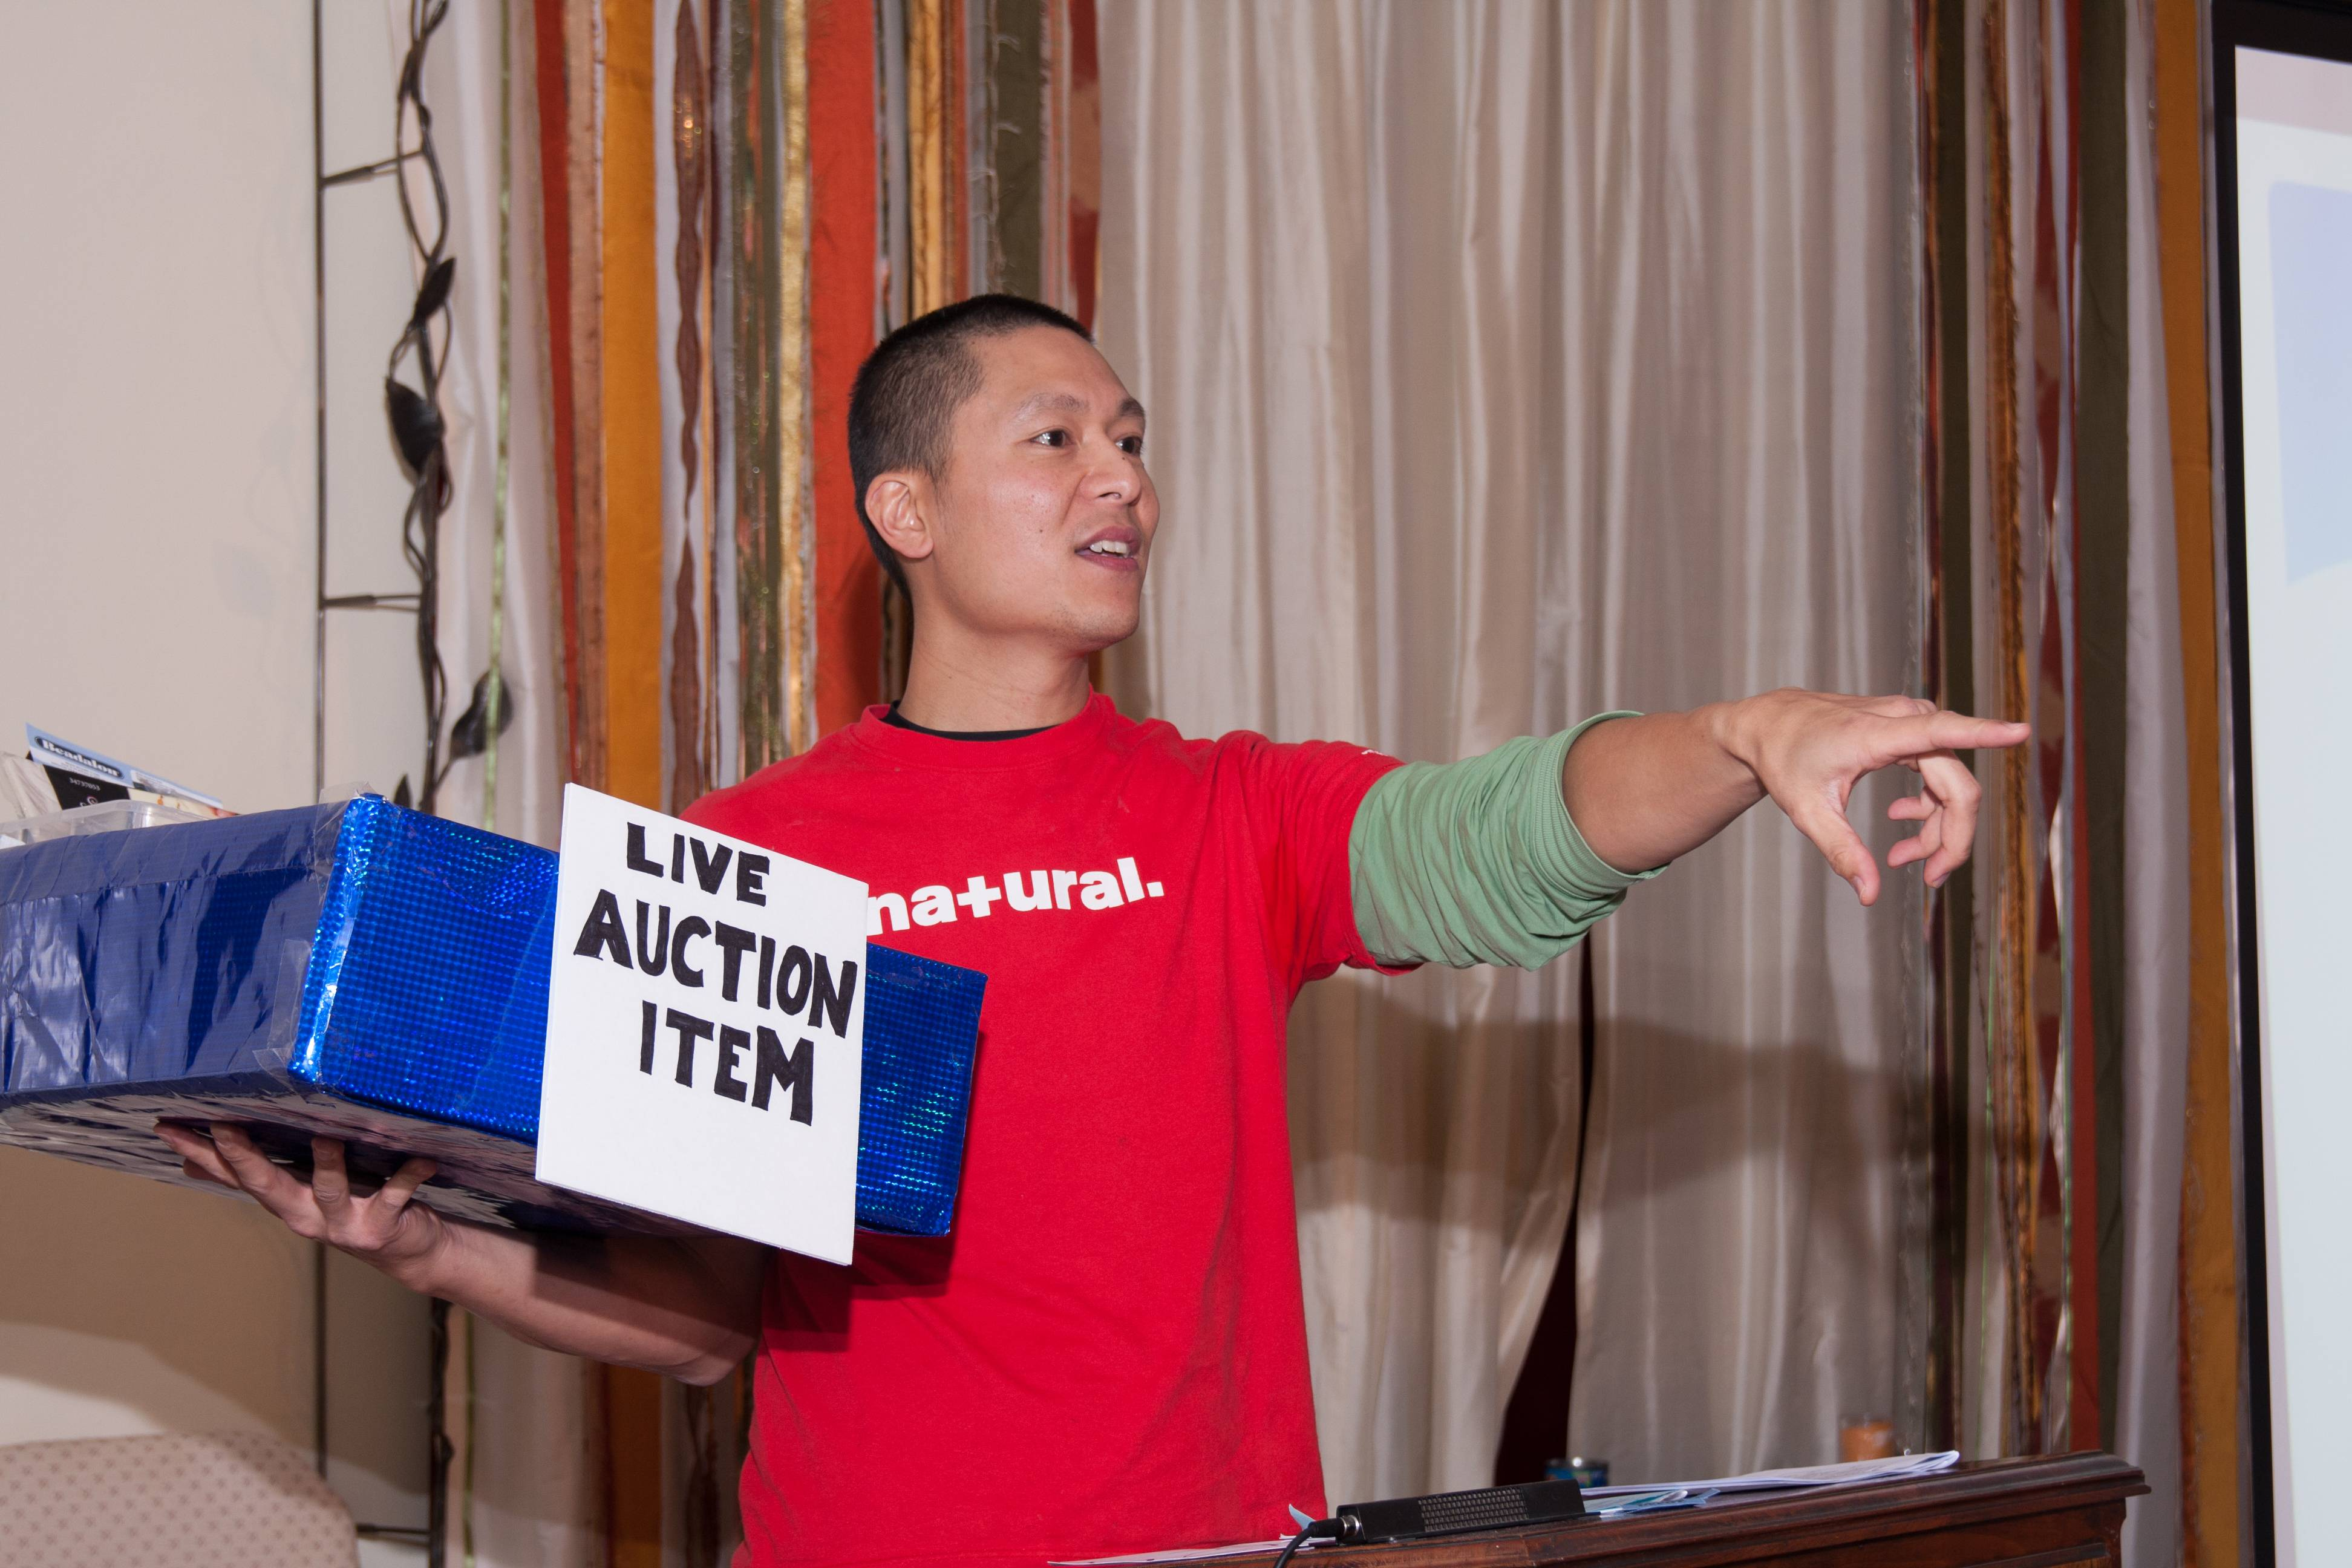 Auctioneer Chung Liang solicits bids during the auction at the Unitarian Universalist Society of Geneva which raised more than $5,000 for local charitable groups.